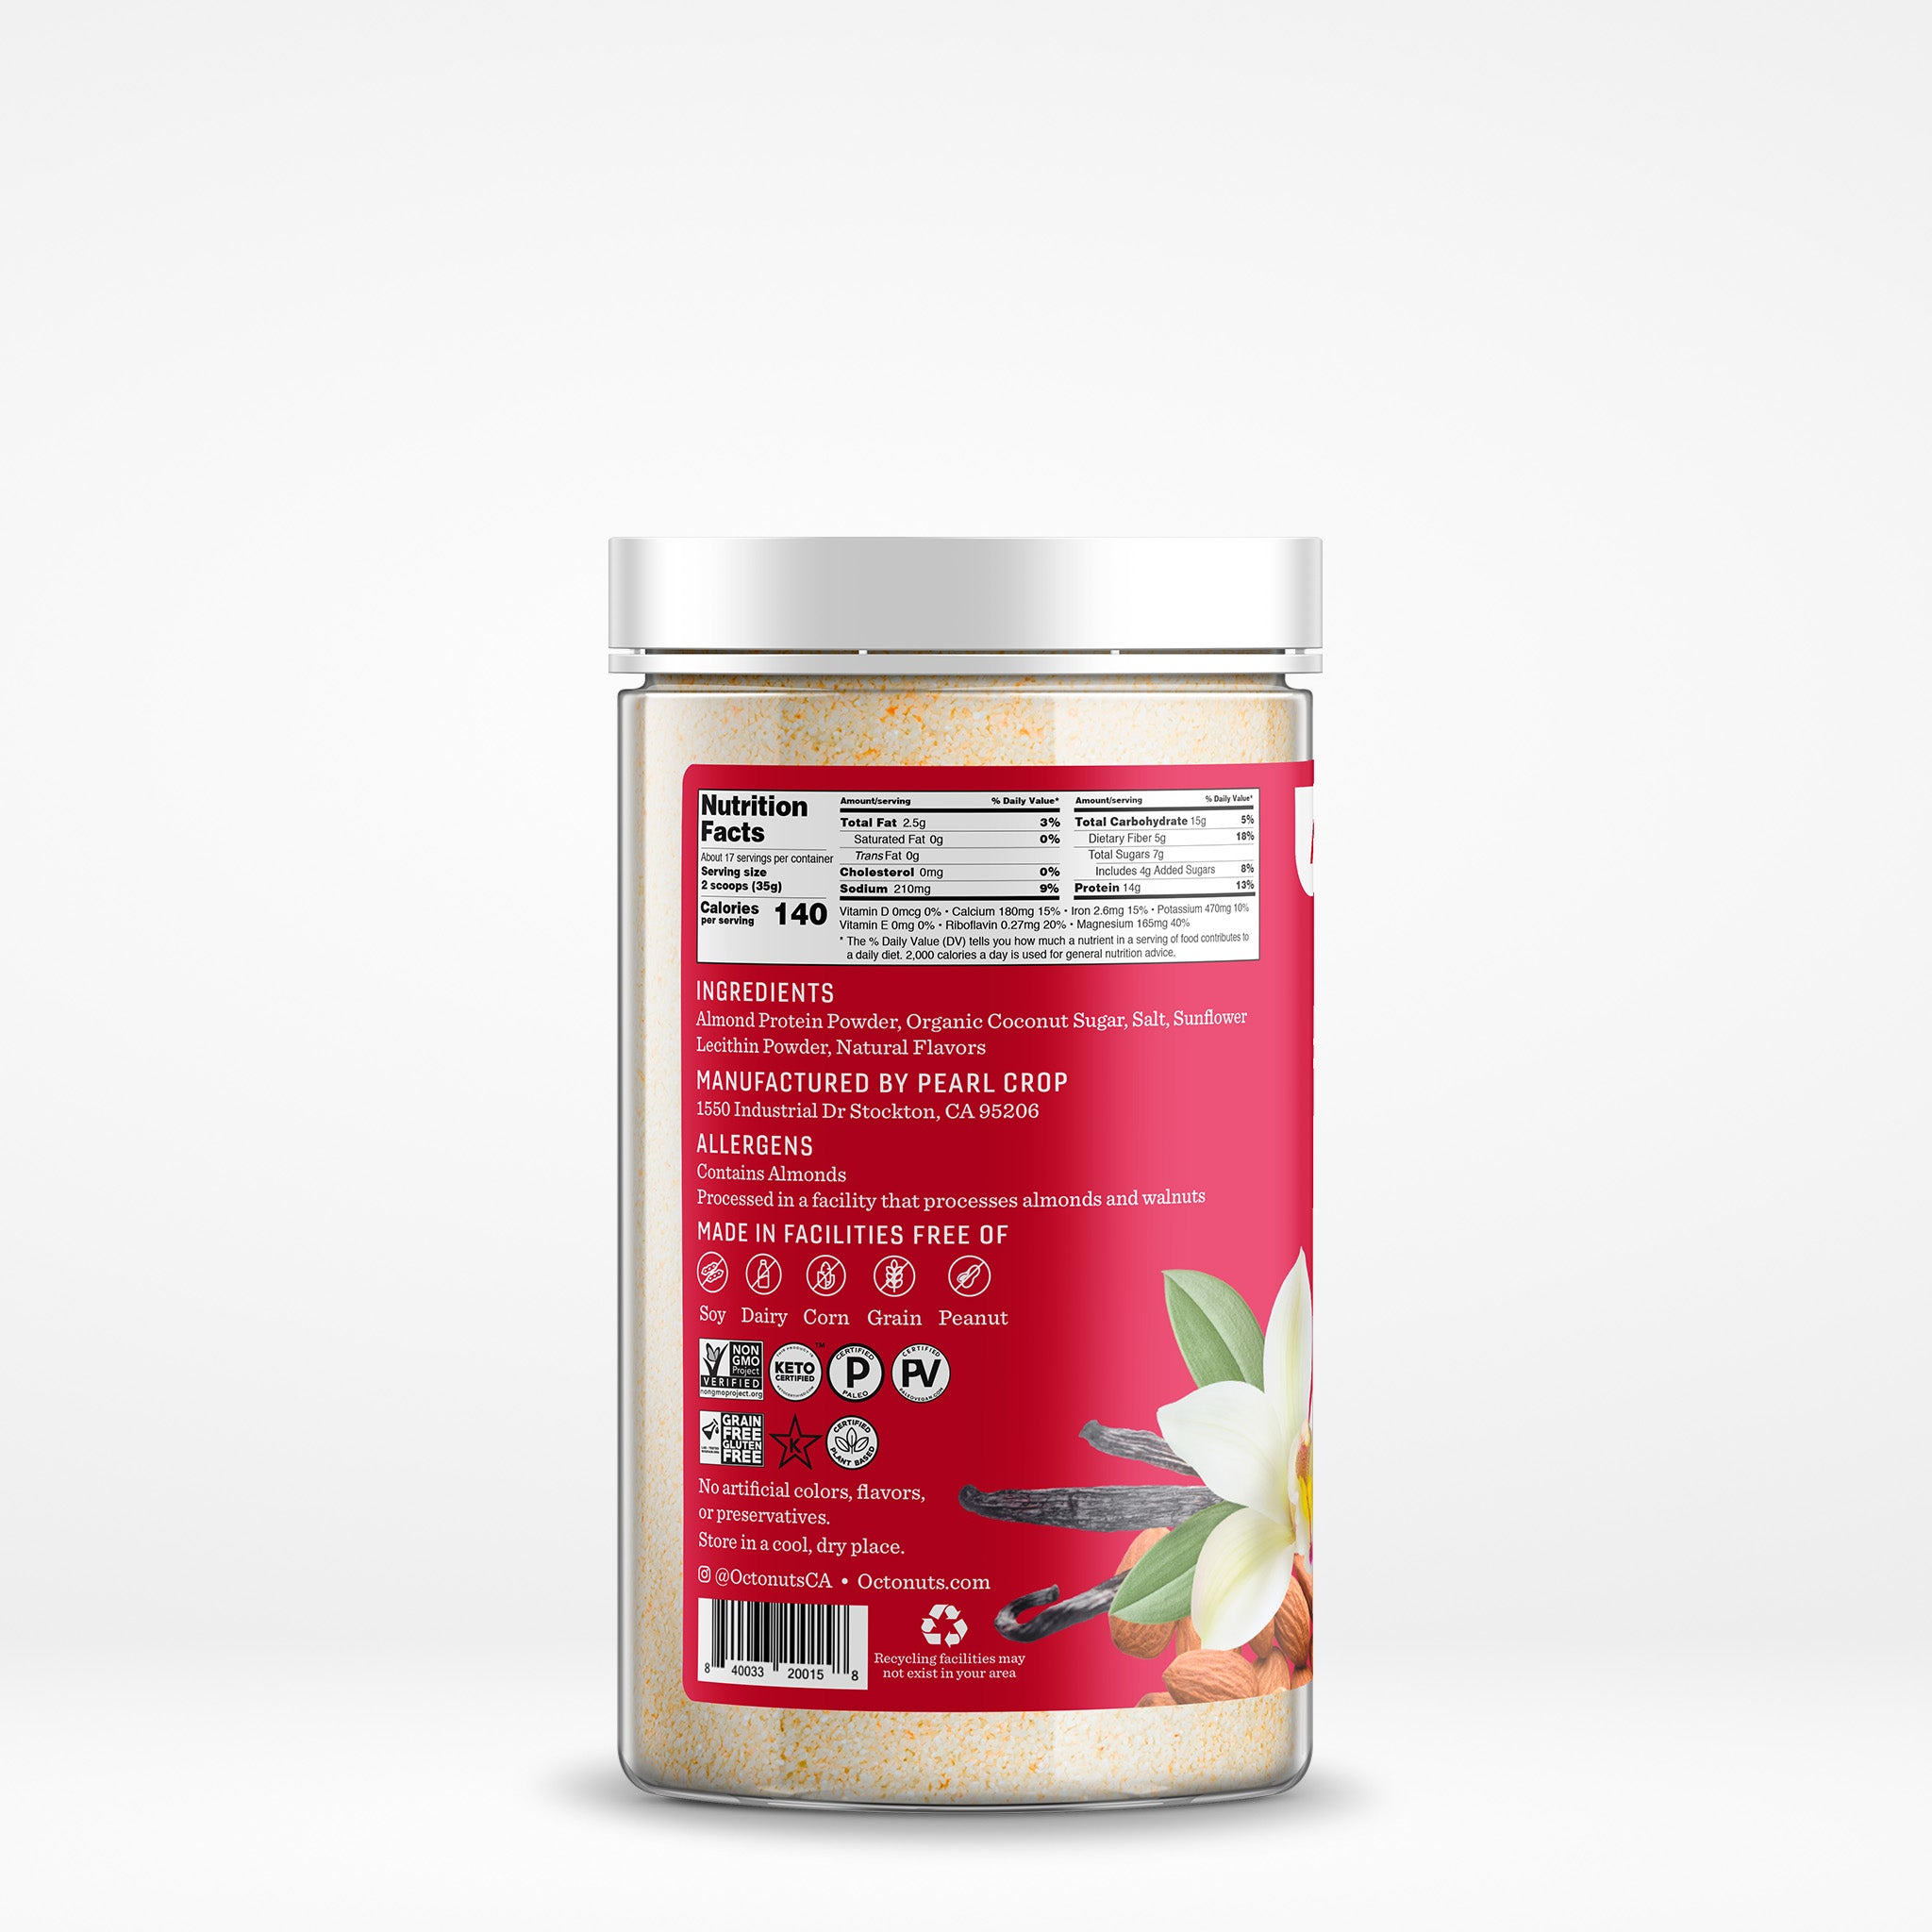 Vanilla Almond Protein Powder Octo-Pack